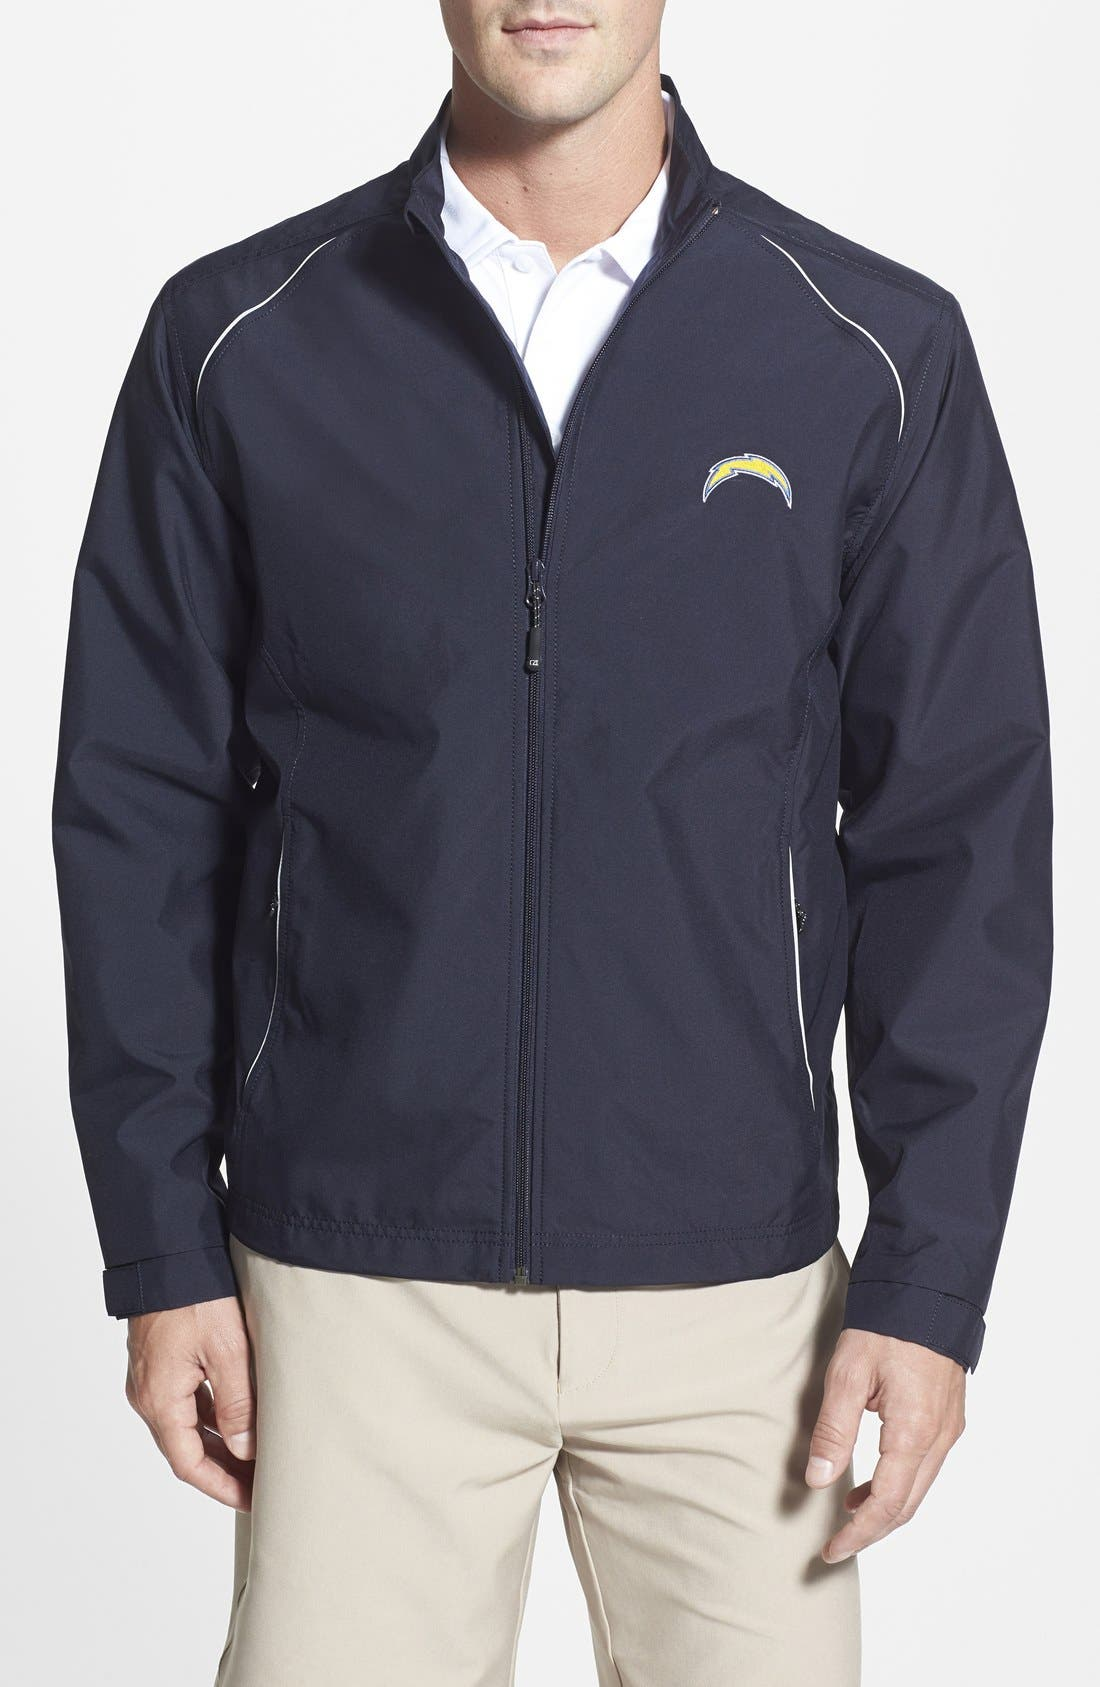 San Diego Chargers - Beacon WeatherTec Wind & Water Resistant Jacket,                             Main thumbnail 1, color,                             Navy Blue